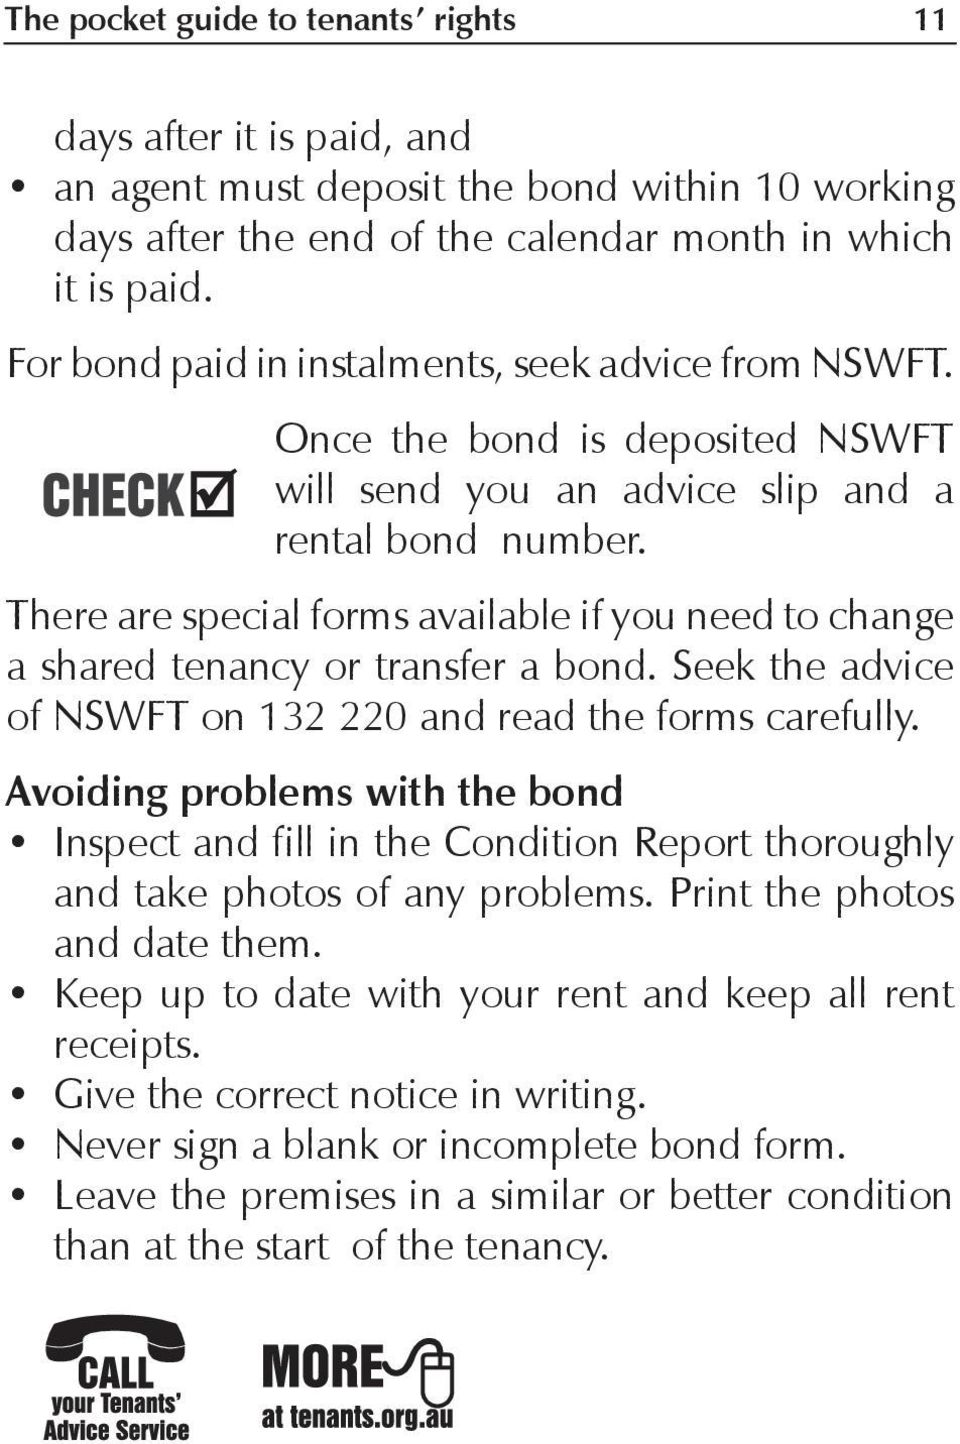 There are special forms available if you need to change a shared tenancy or transfer a bond. Seek the advice of NSWFT on 132 220 and read the forms carefully.